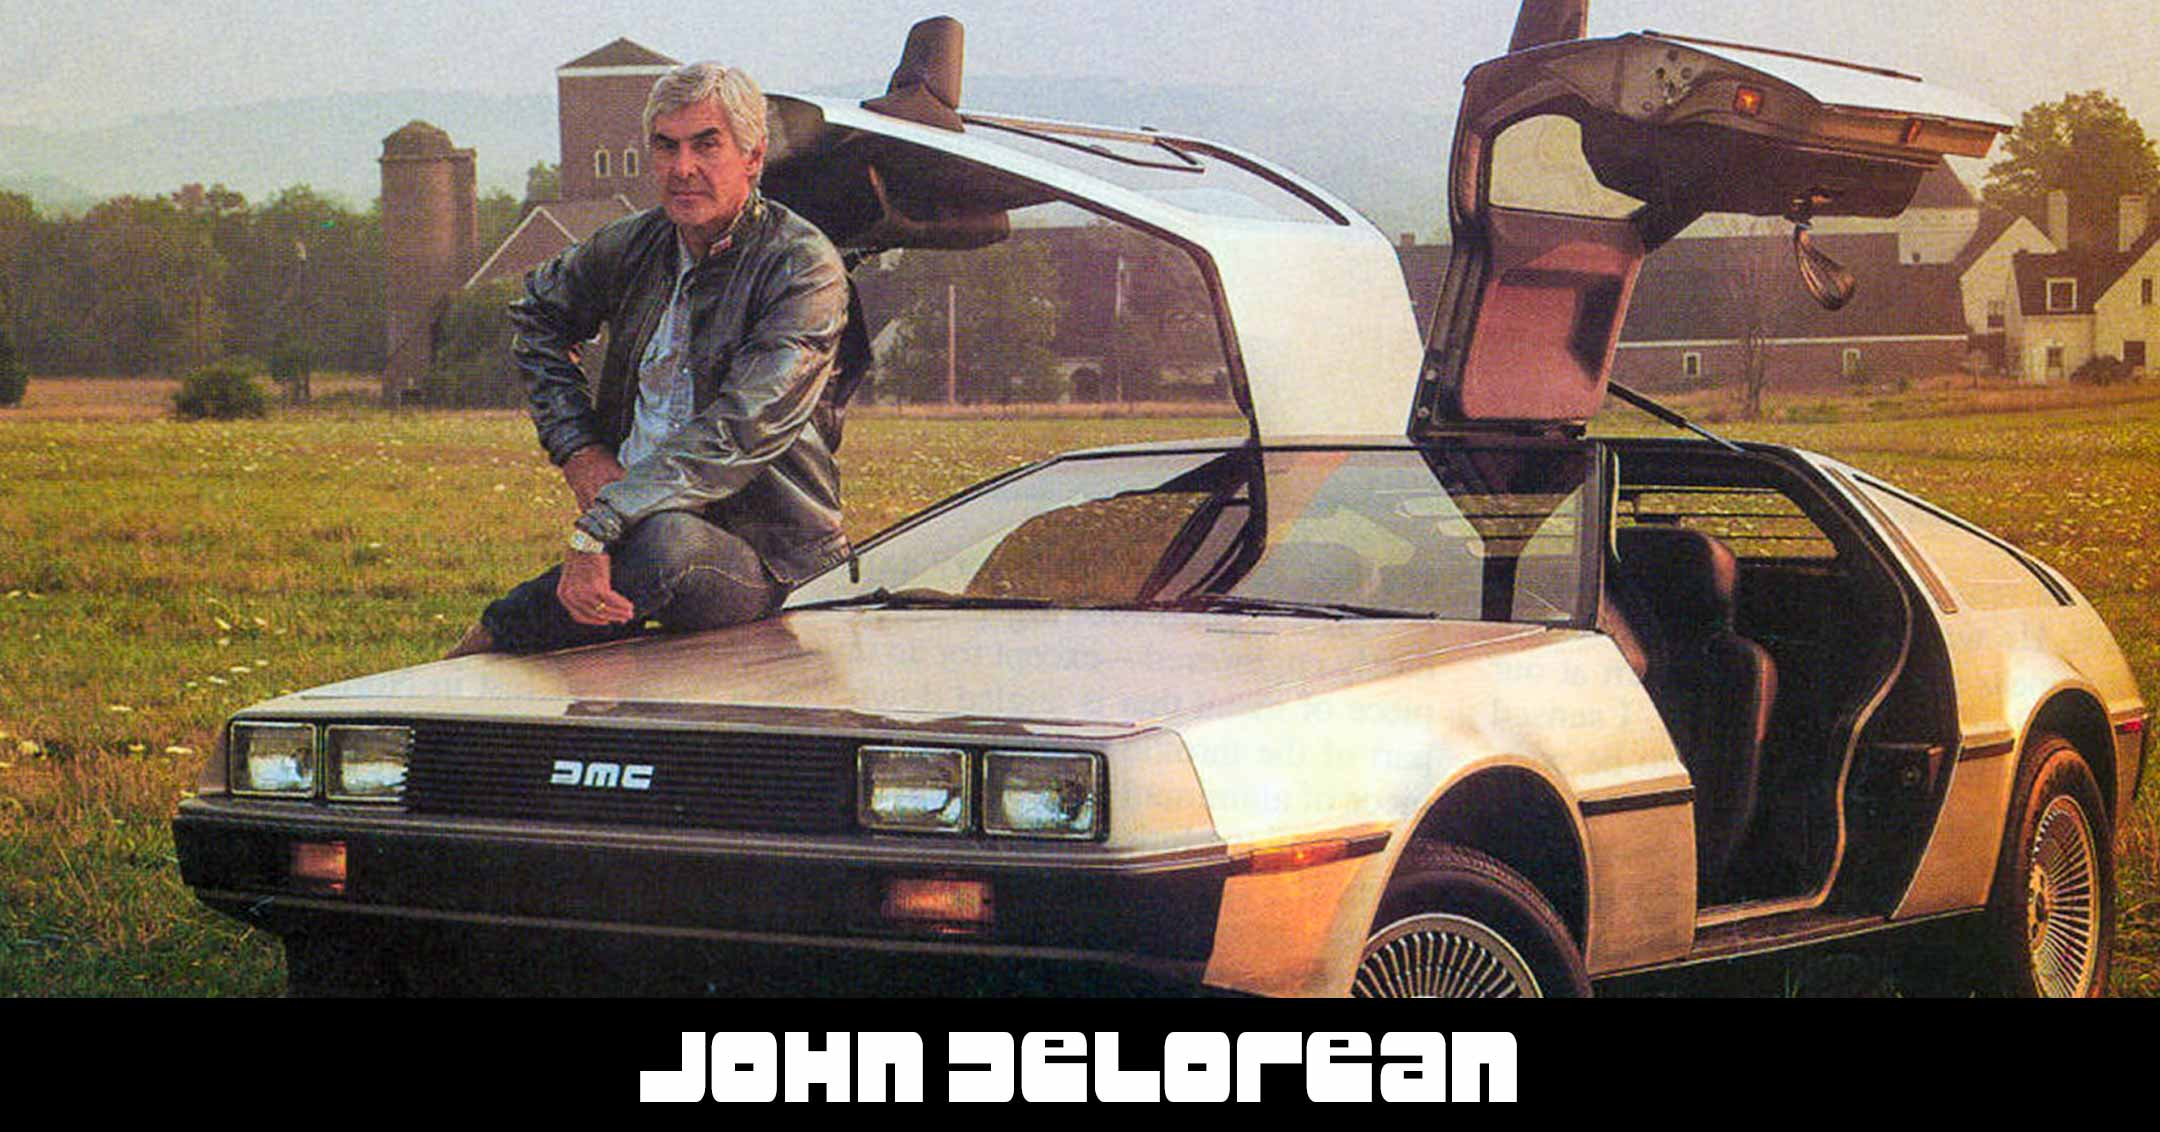 028 – John DeLorean